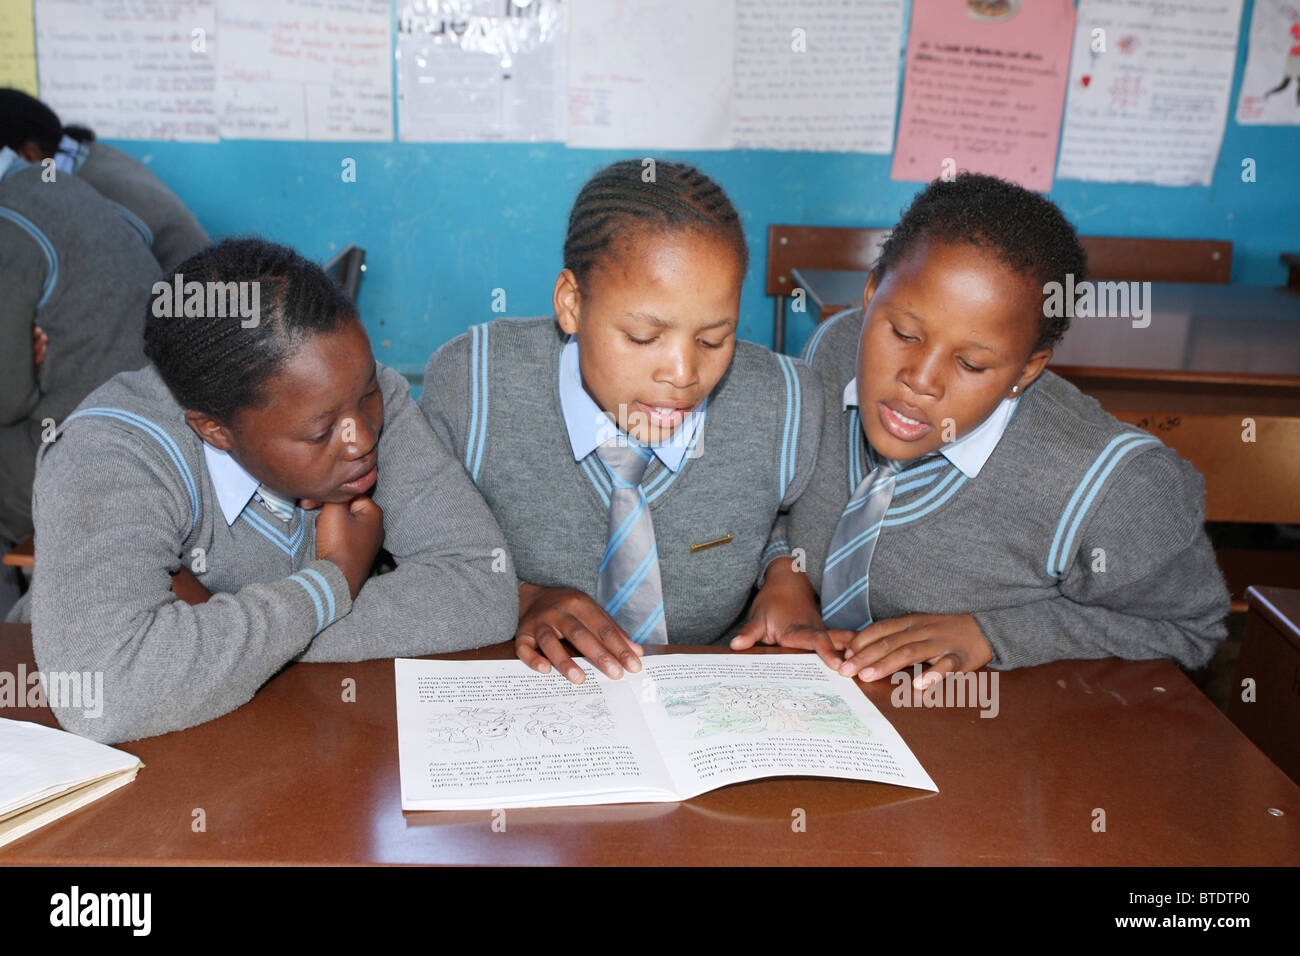 Three high school girls studying together in a classroom in a rural Kwazulu Natal school - Stock Image